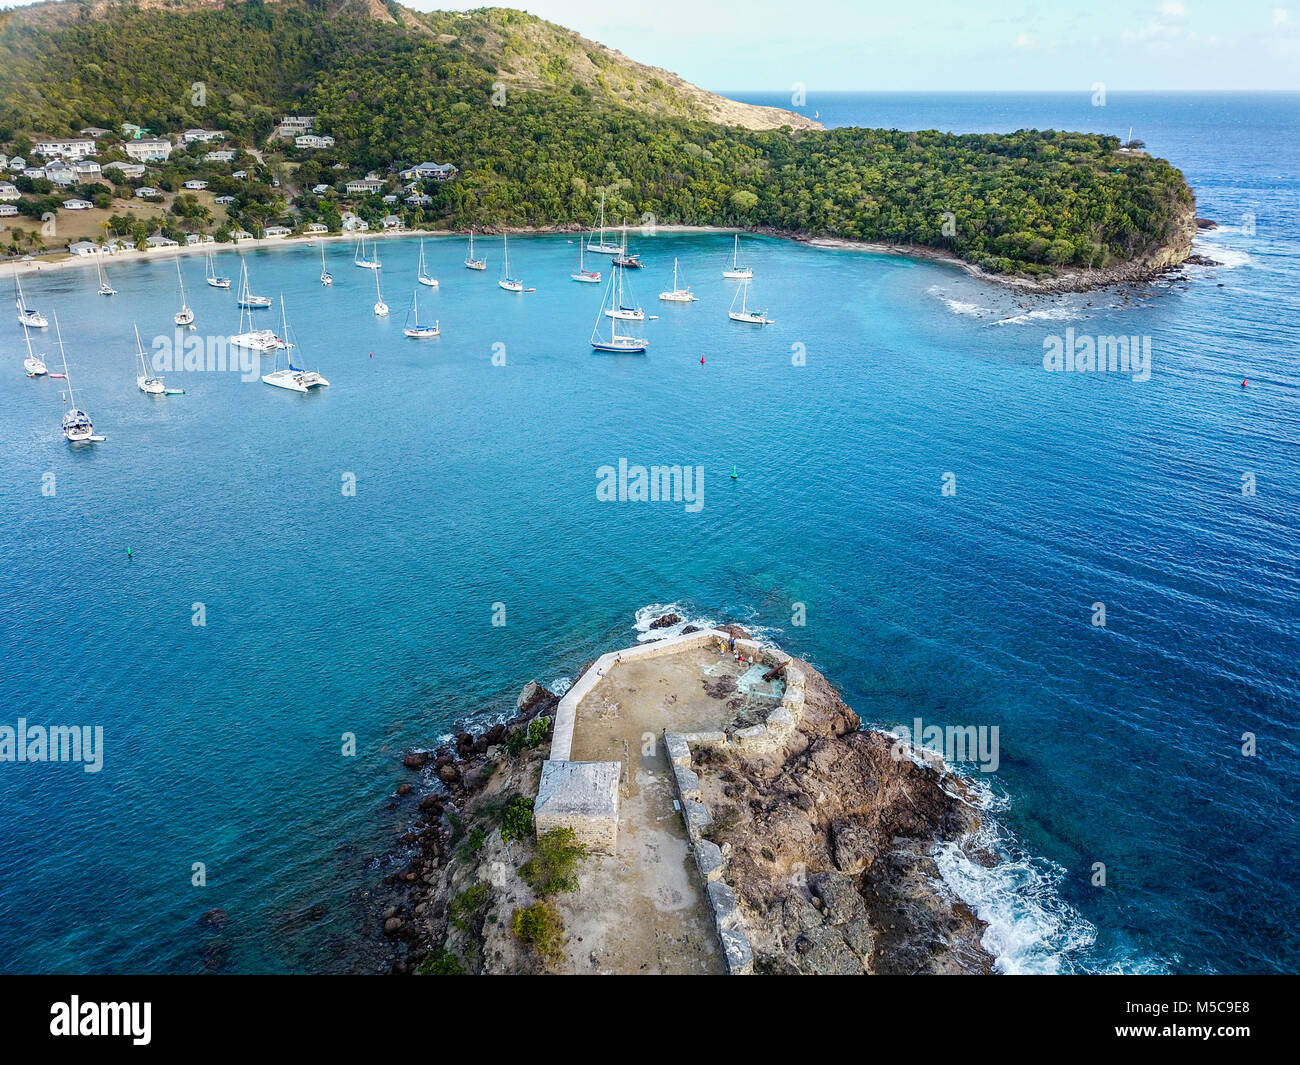 Fort Berkeley, Freeman's Bay, Nelson's Dockyard, Antigua - Stock Image